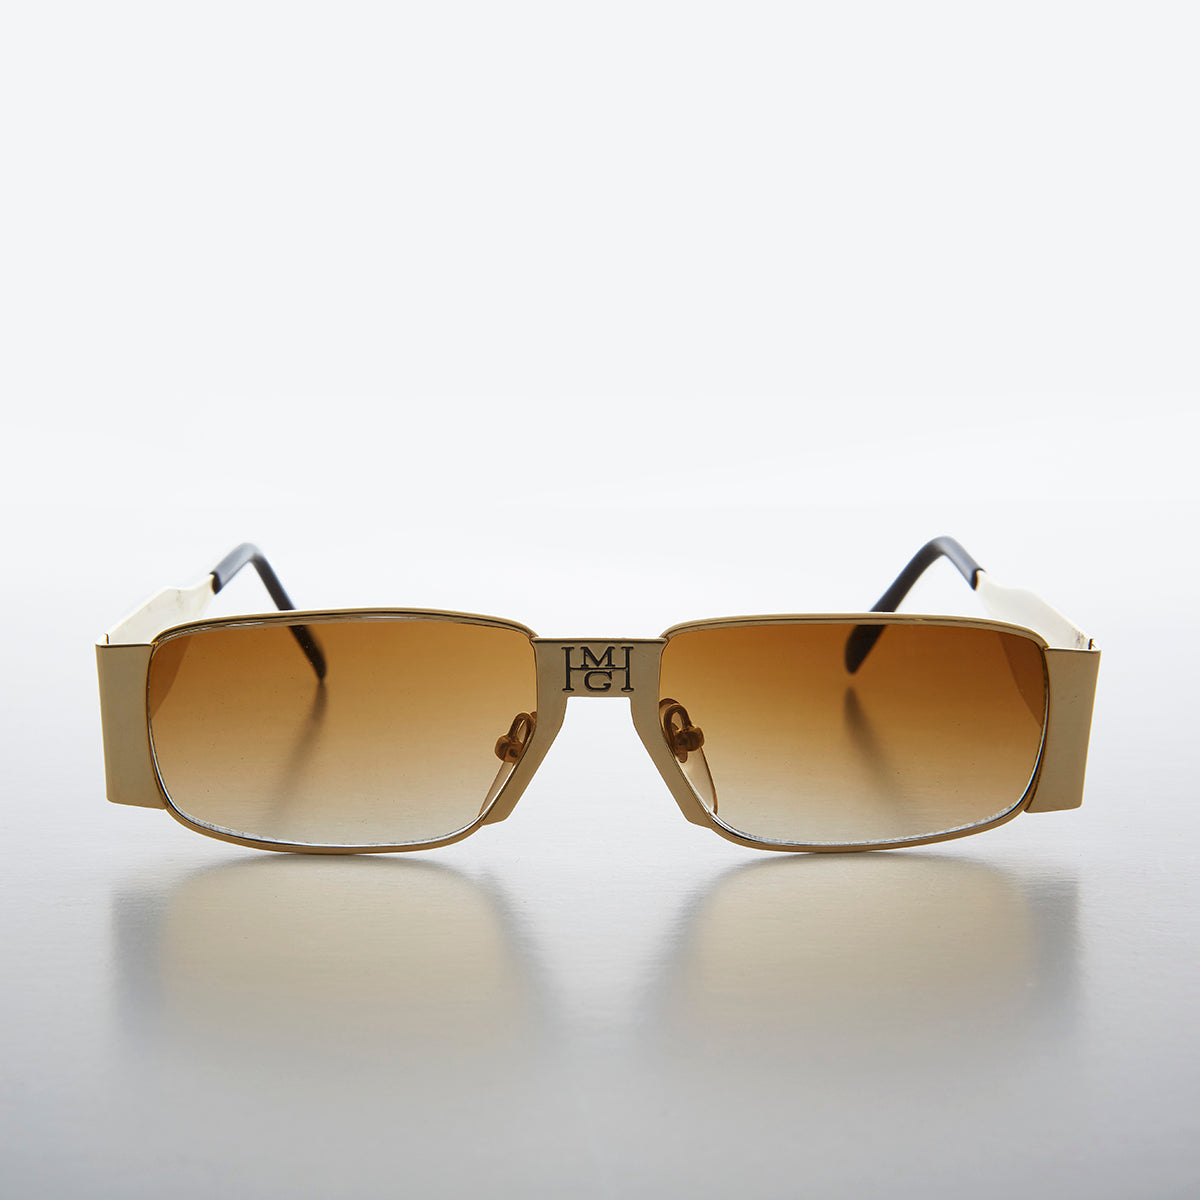 Rare Unique Gold Sleek Hip Hop Bling Rapper Sunglasses